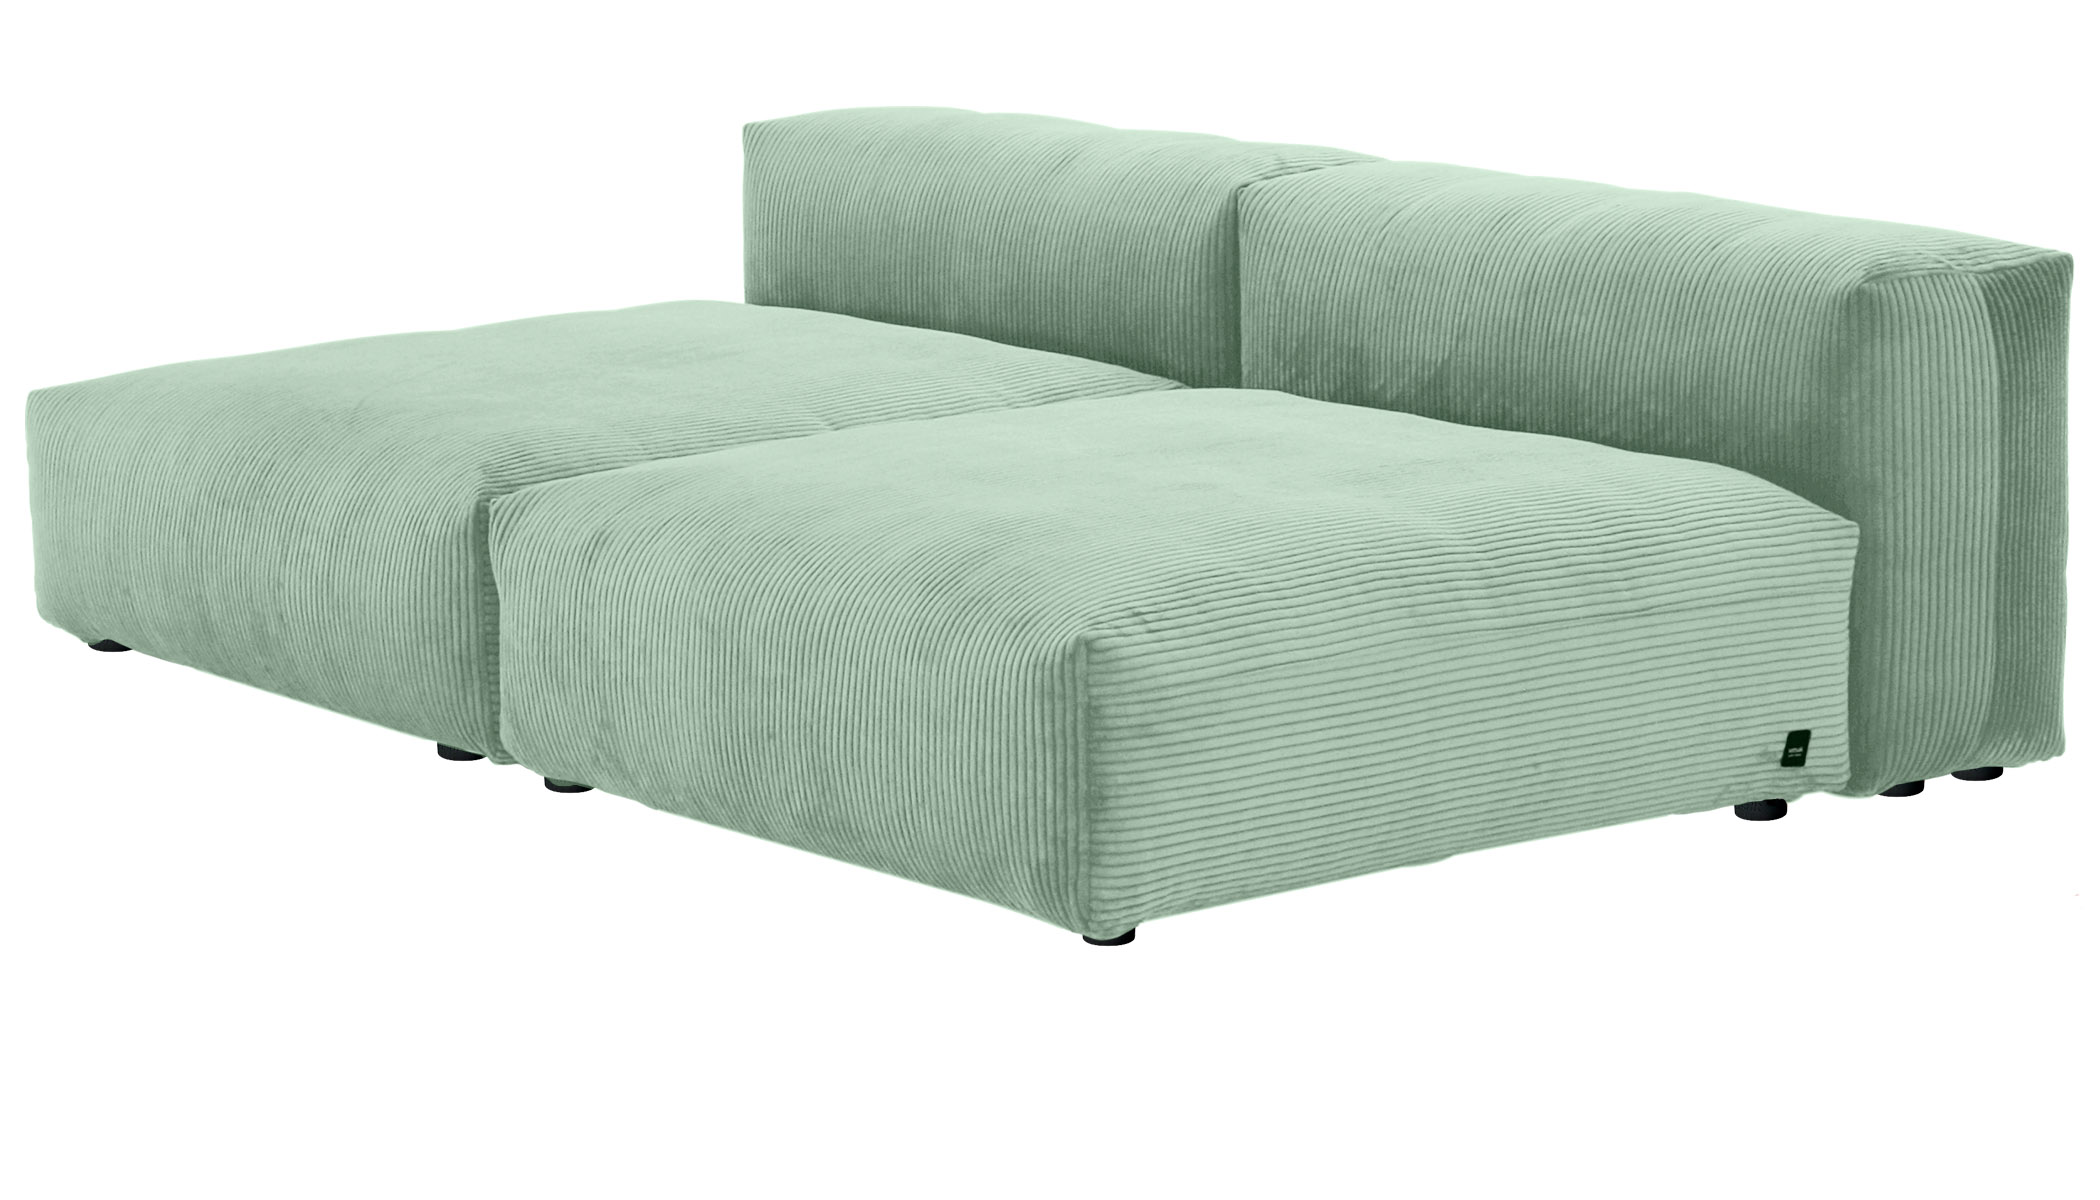 Sofa 2 Large 2 Side  Cord Velours duck egg